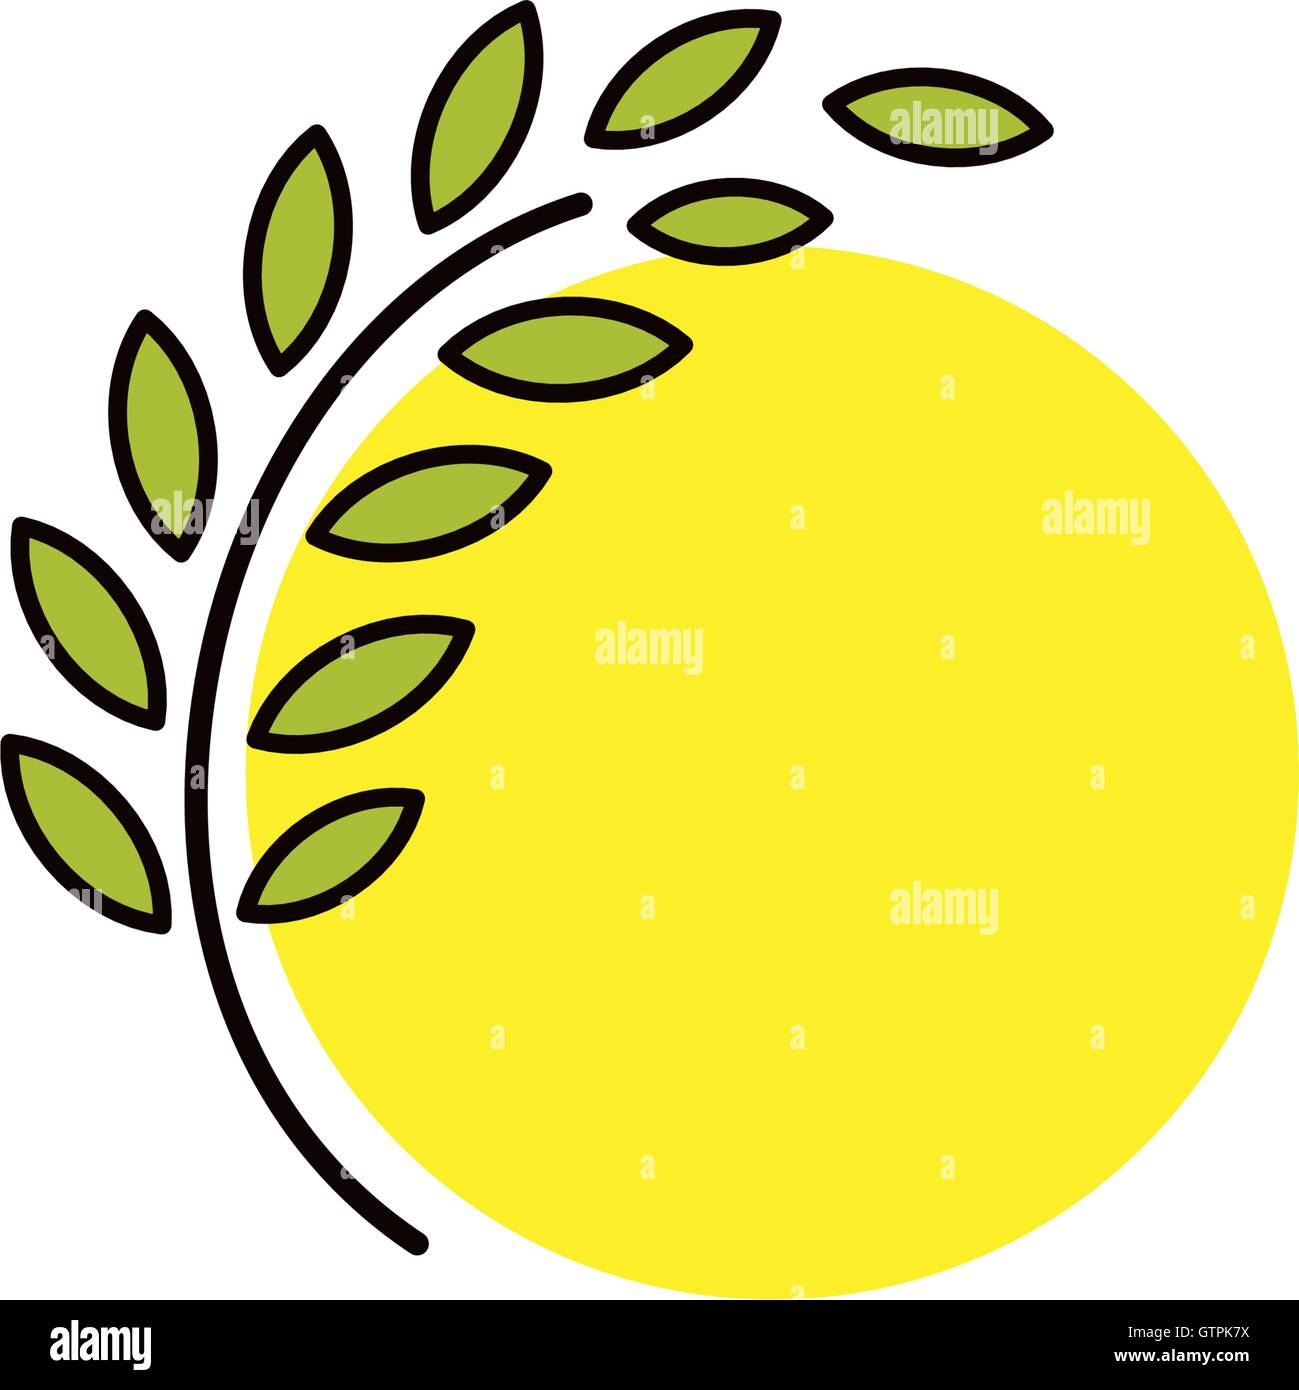 Isolated round shape abstract agricultural vector logo. Wheat ear with sun silhouette logotype. Farm icon. Harvesting - Stock Vector